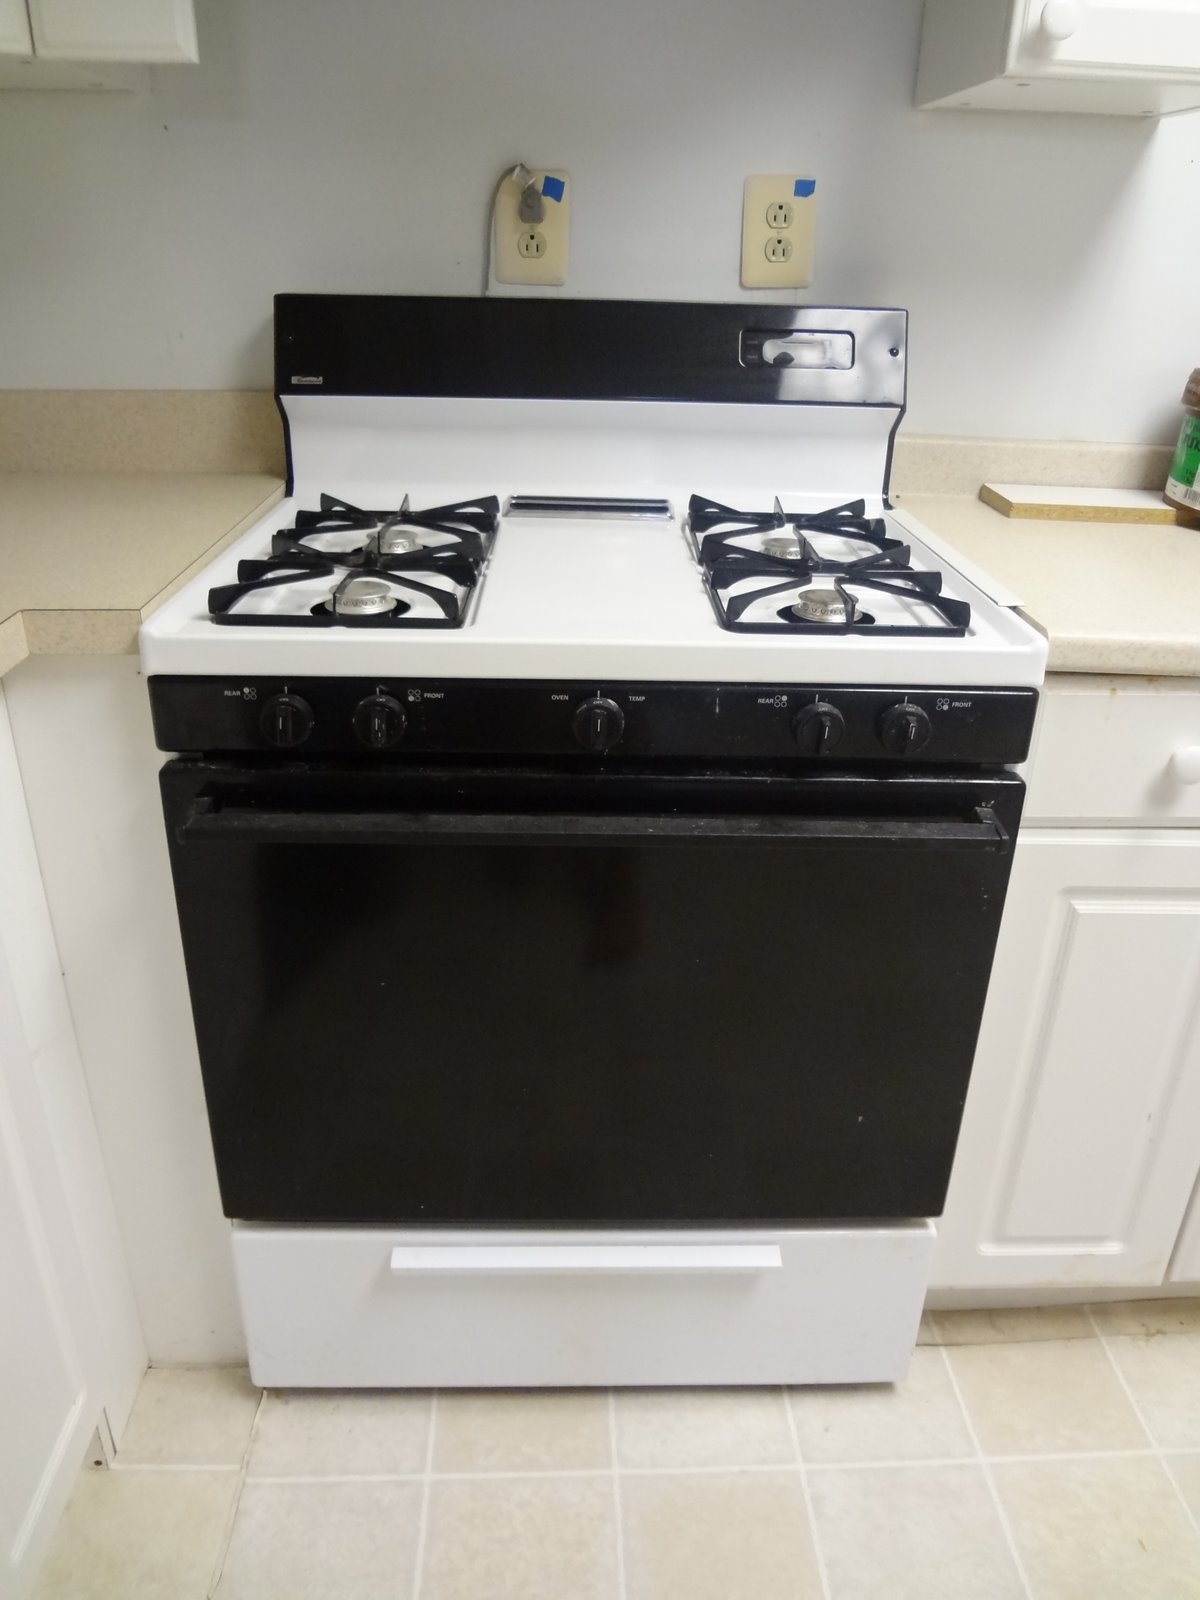 42 Gristmill Rd Howell NJ Moving Sale Kenmore Gas Stove